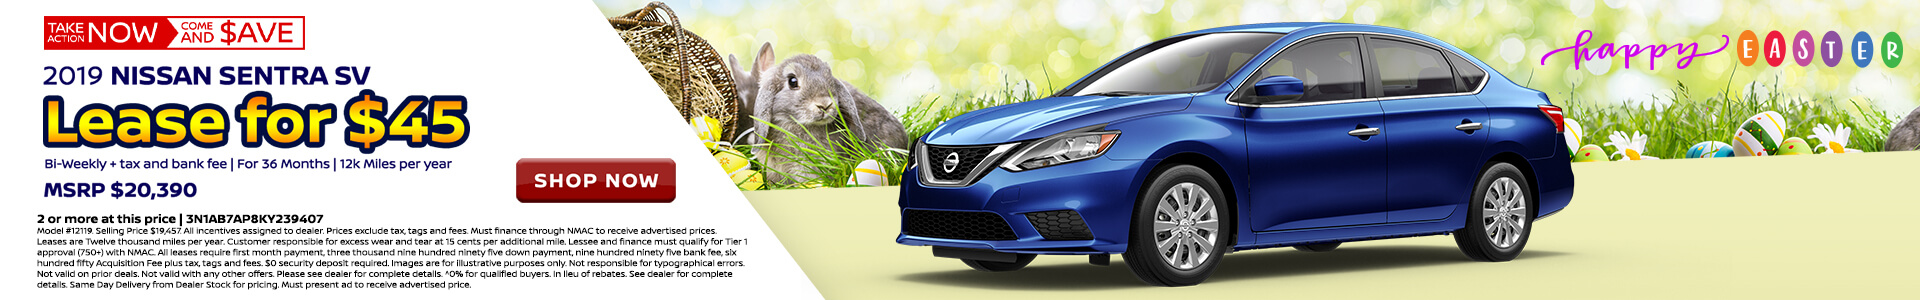 Nissan Sentra $90 Lease